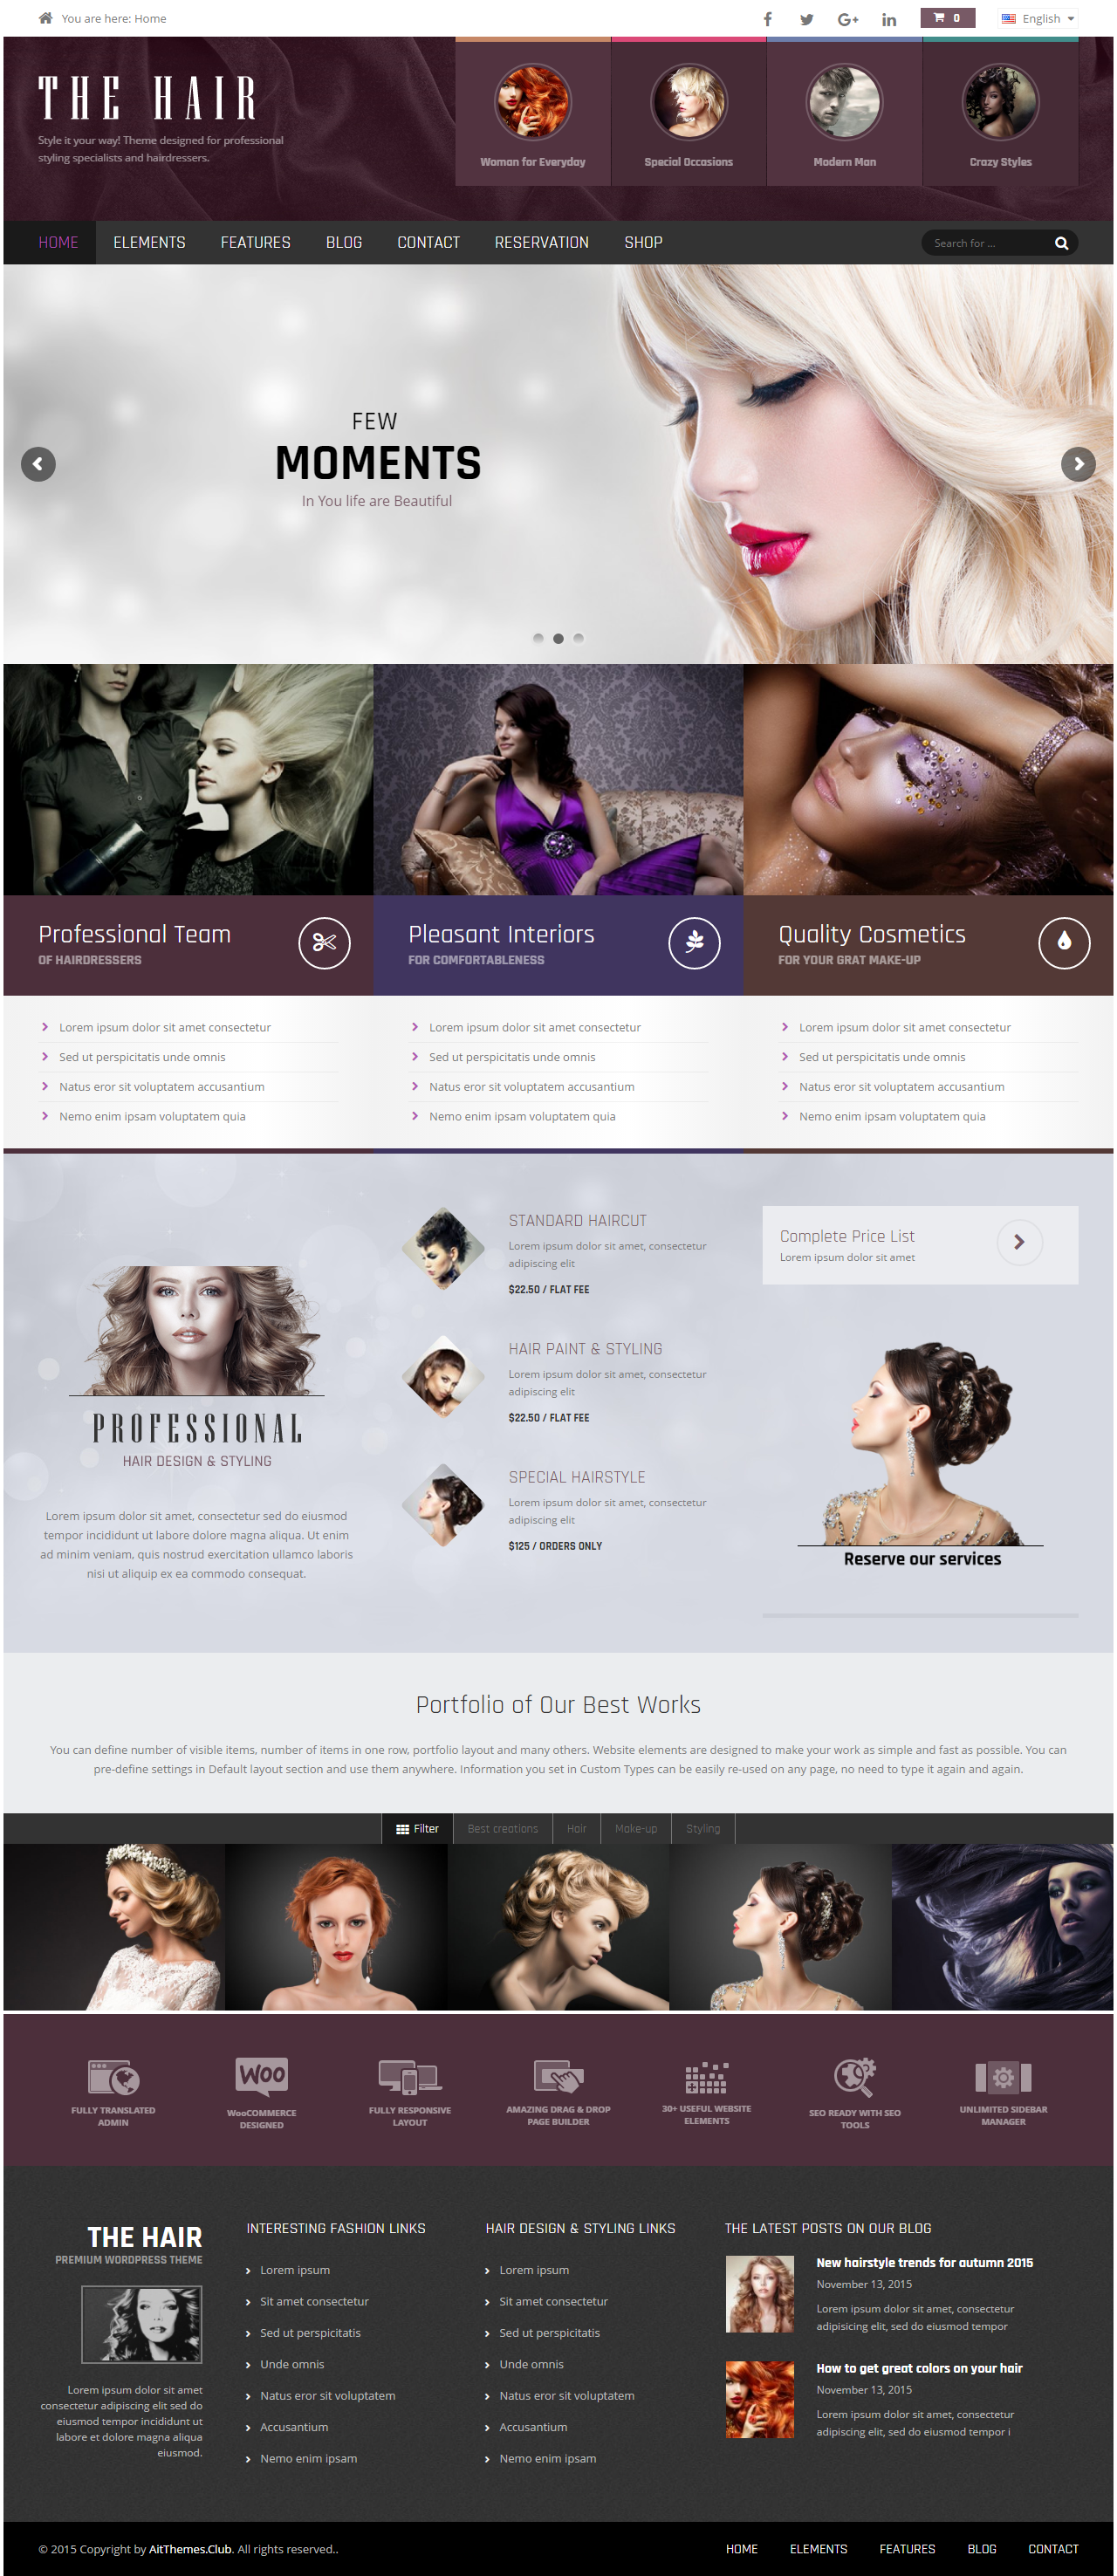 web design services in pune Web Design Services in Pune theme for hair salons